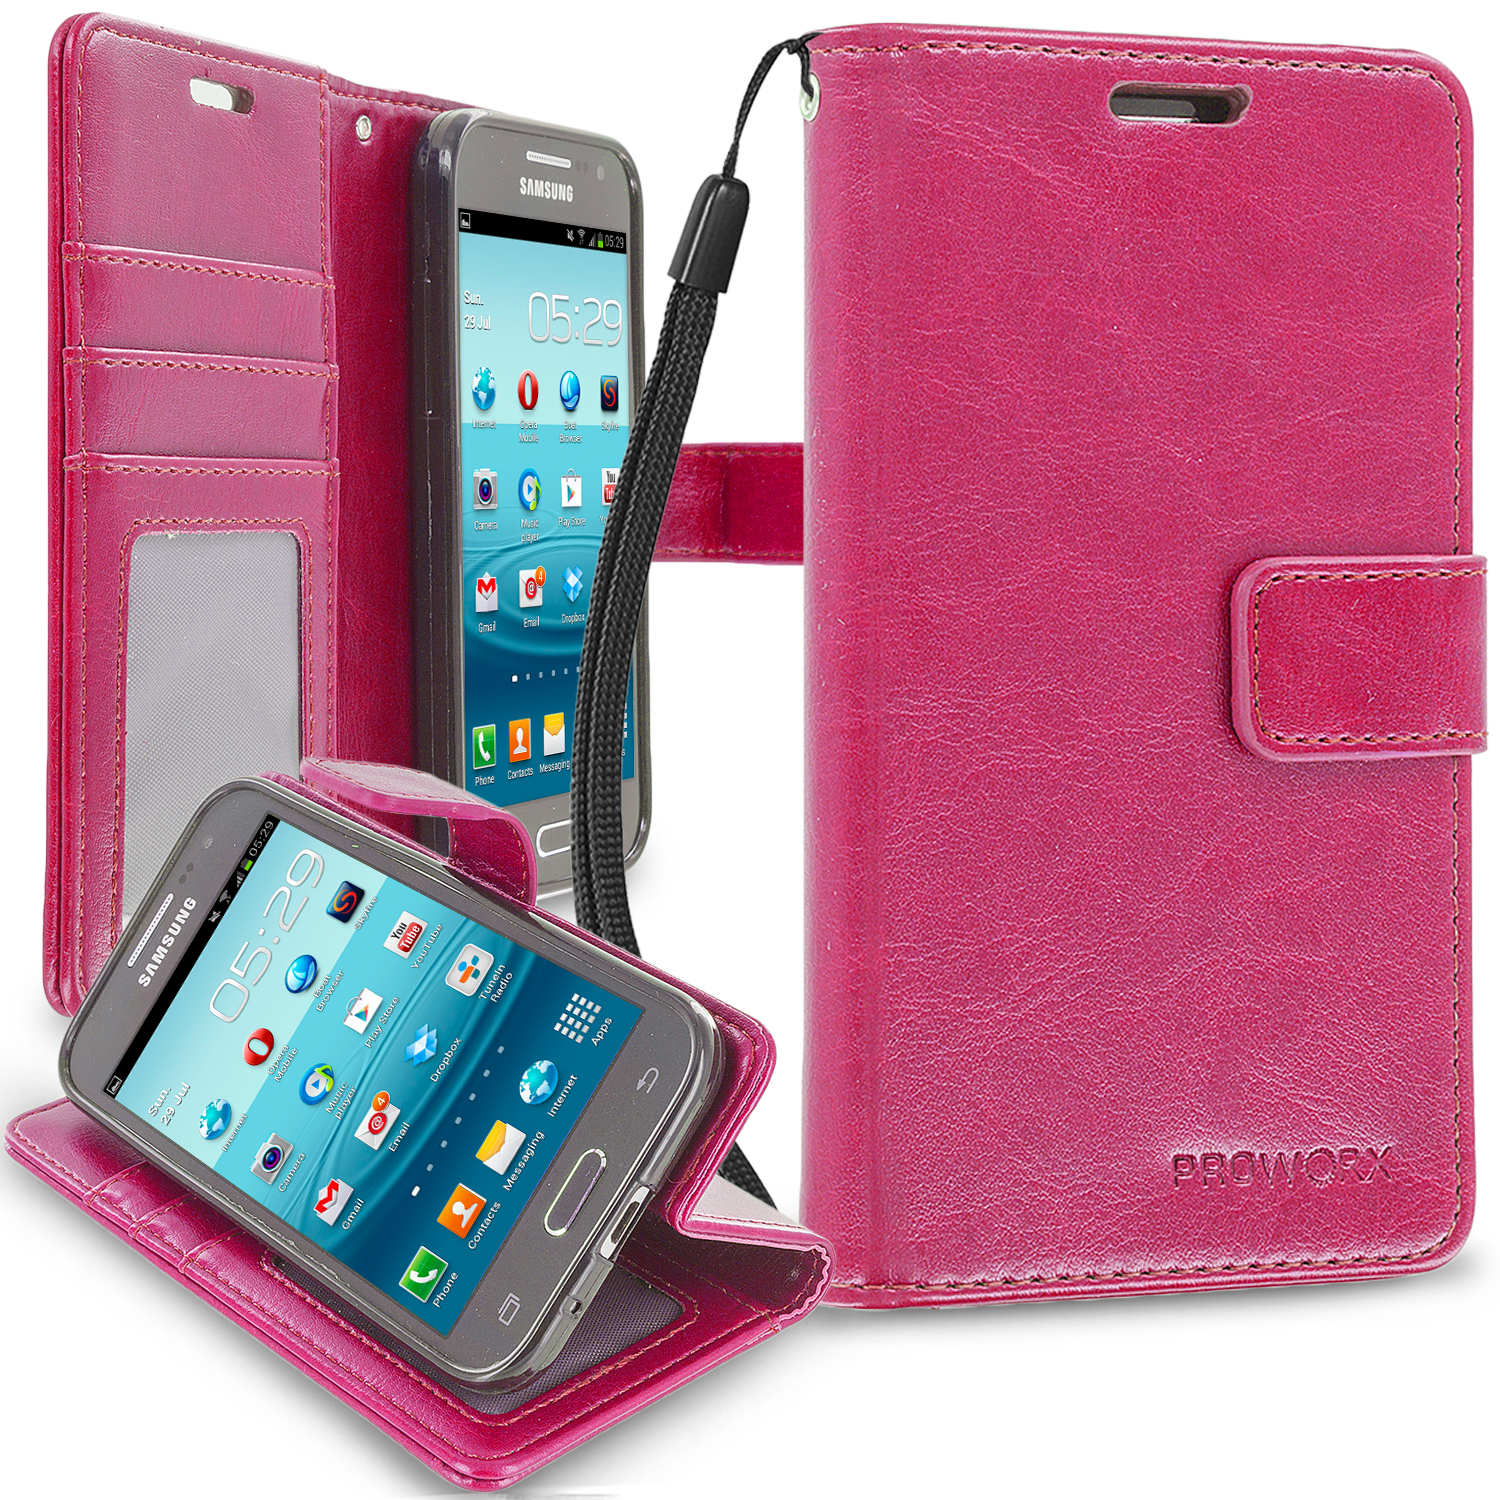 Samsung Galaxy Prevail LTE Core Prime G360P Hot Pink ProWorx Wallet Case Luxury PU Leather Case Cover With Card Slots & Stand